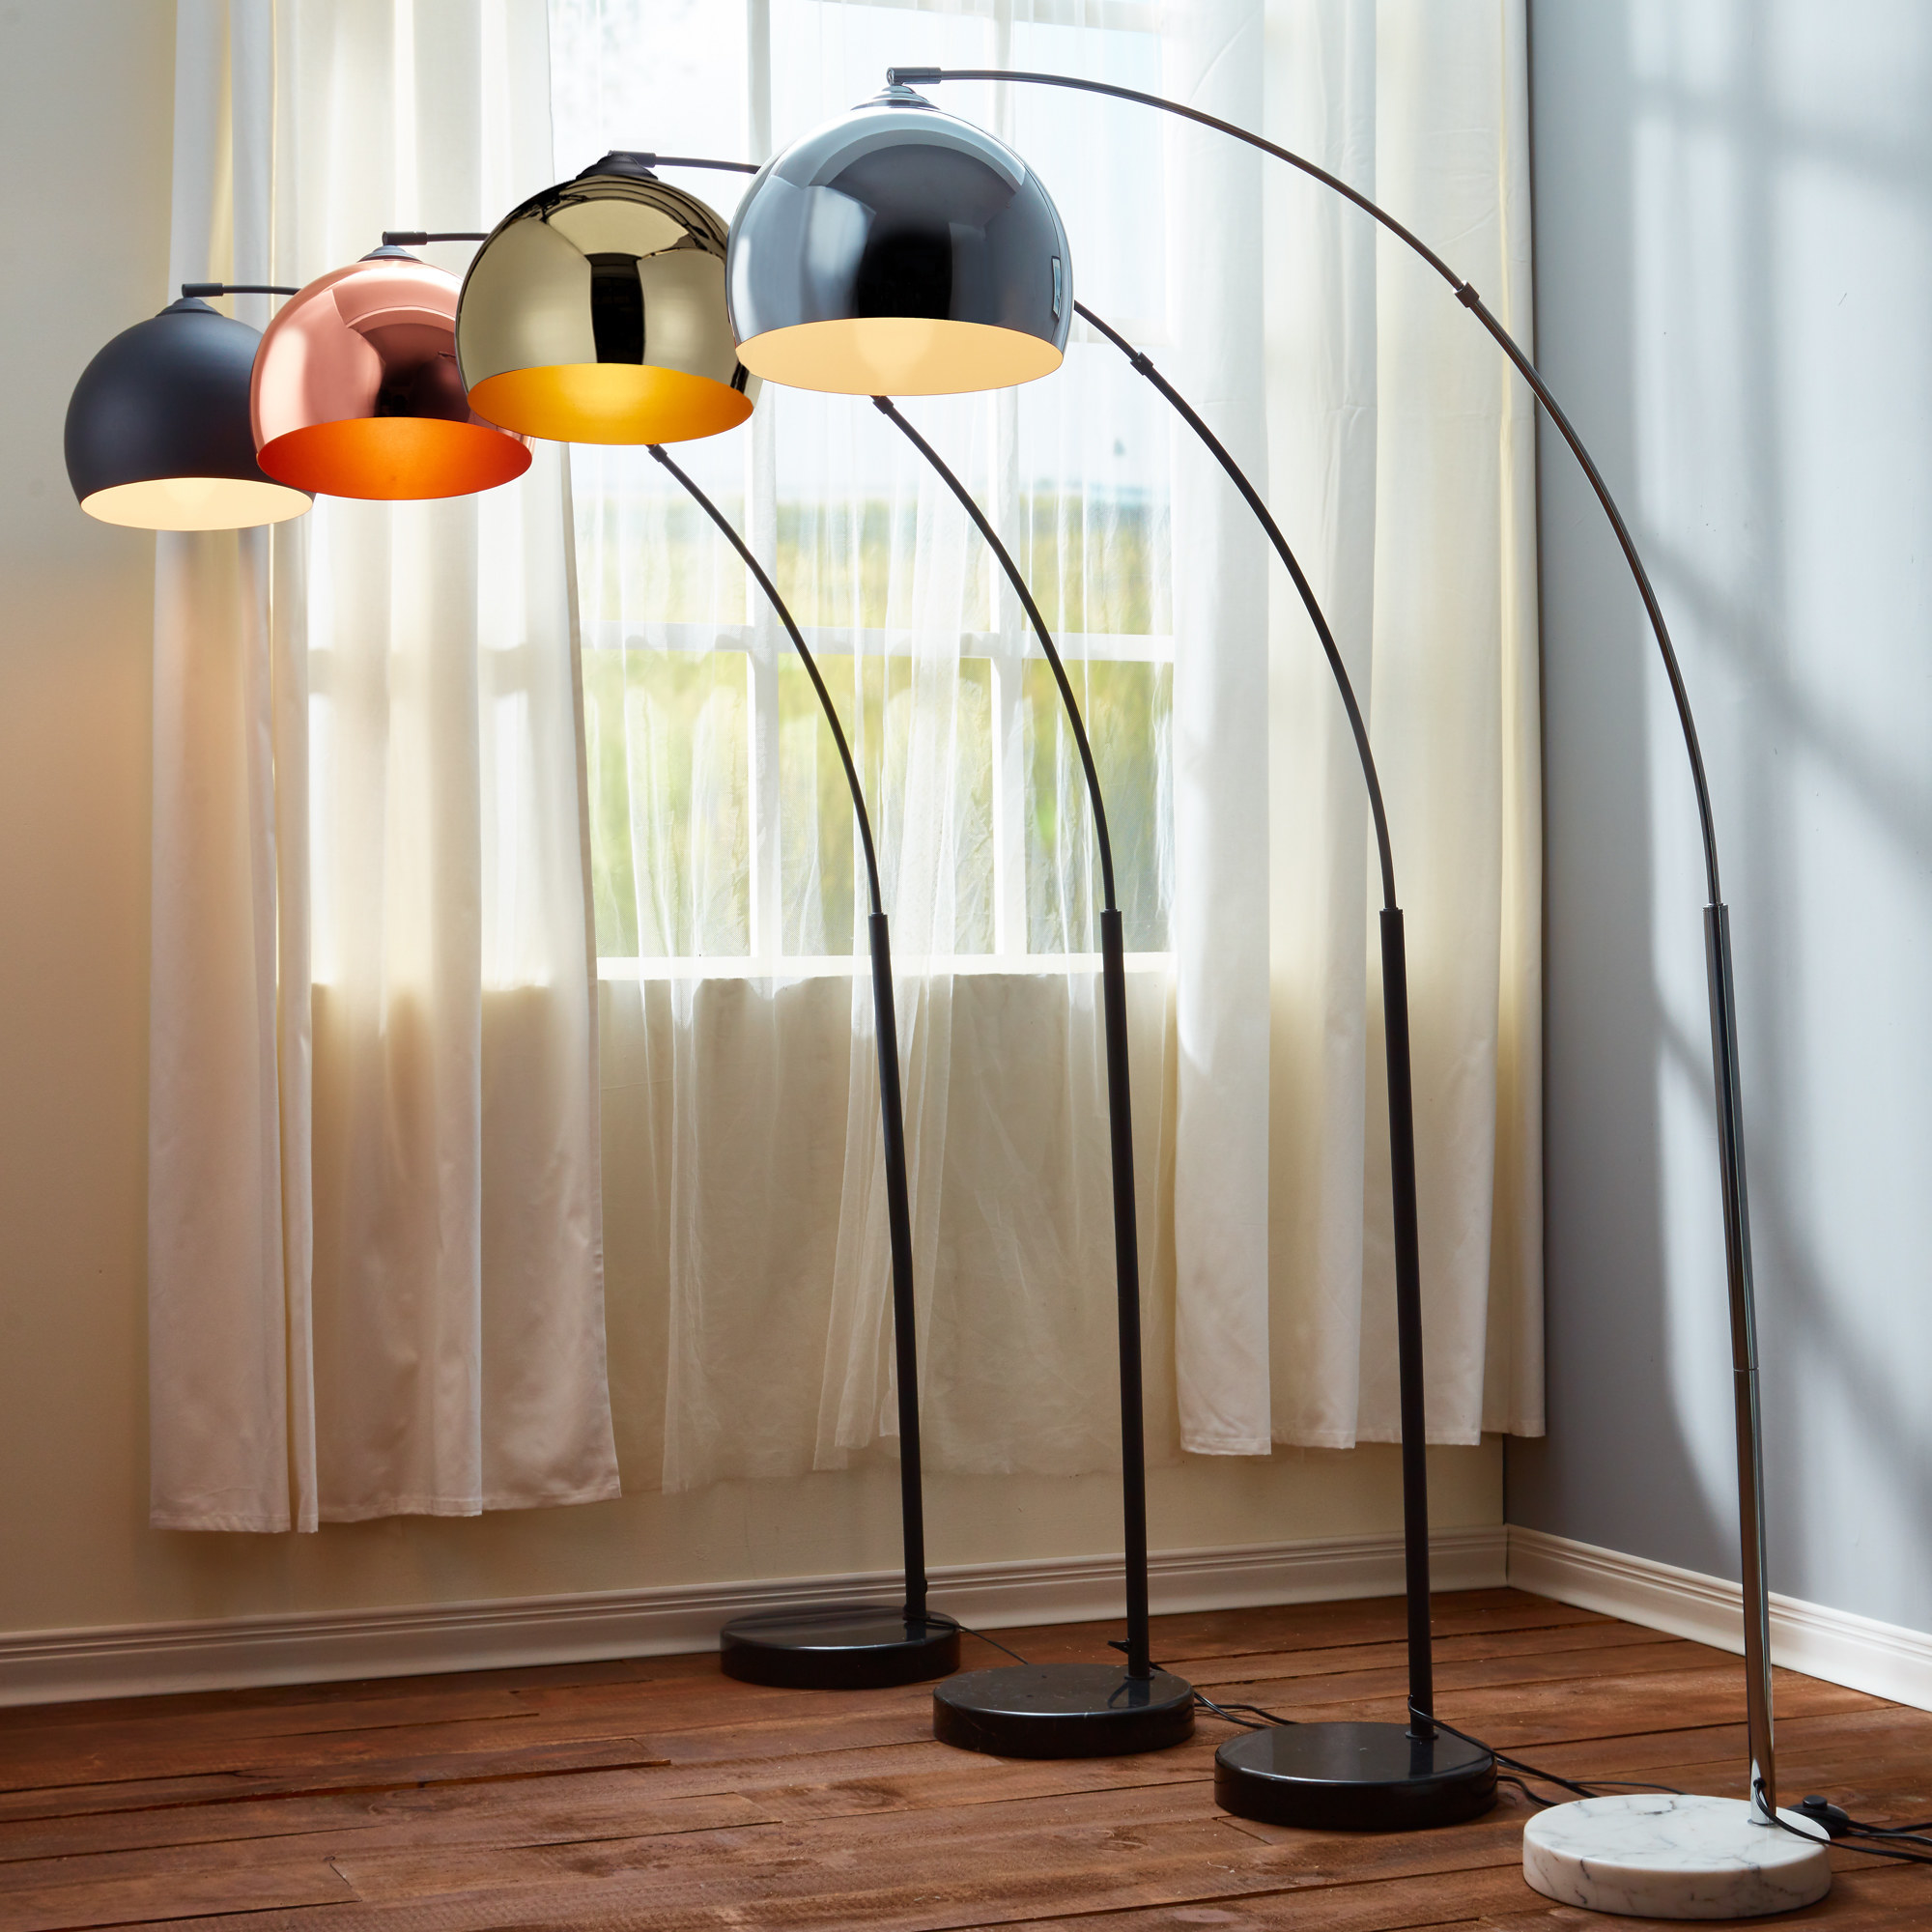 arched lamp with rounded metallic shade